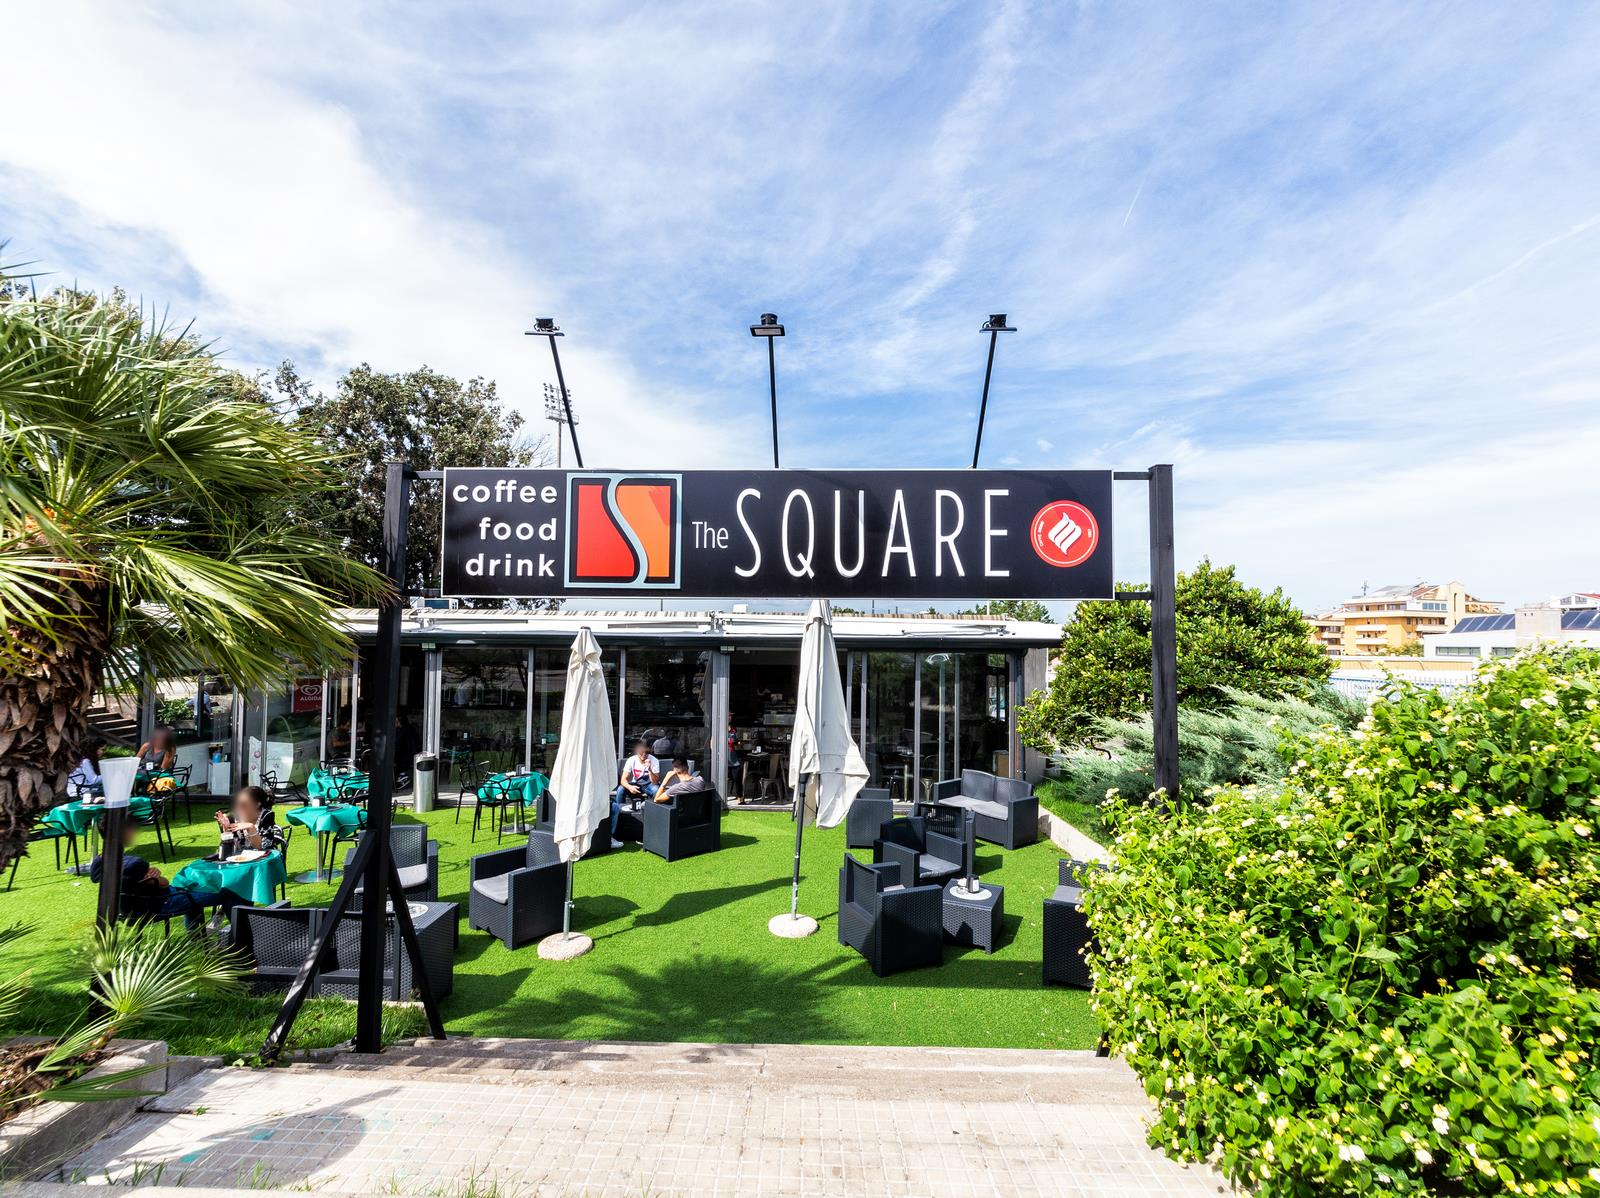 THE SQUARE pizzeria